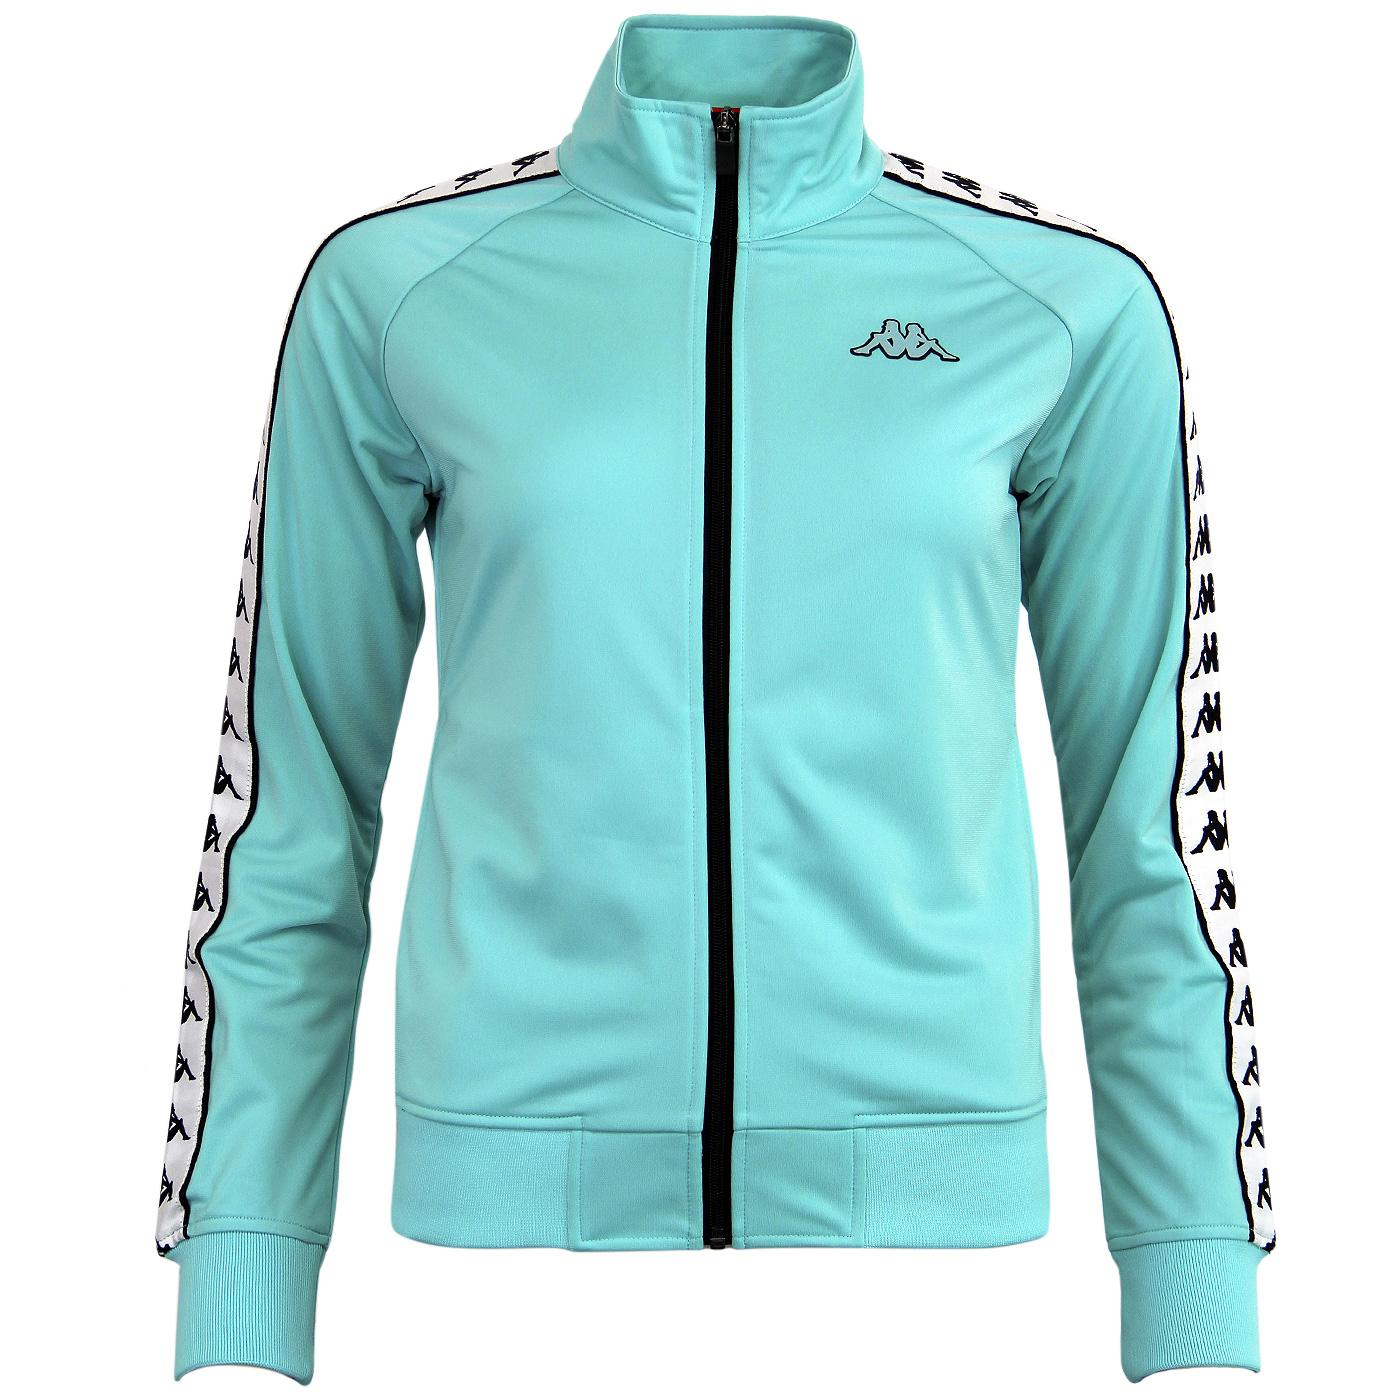 013b44b72c KAPPA 'Anniston Banda' Funnel Neck Track top in Turquoise